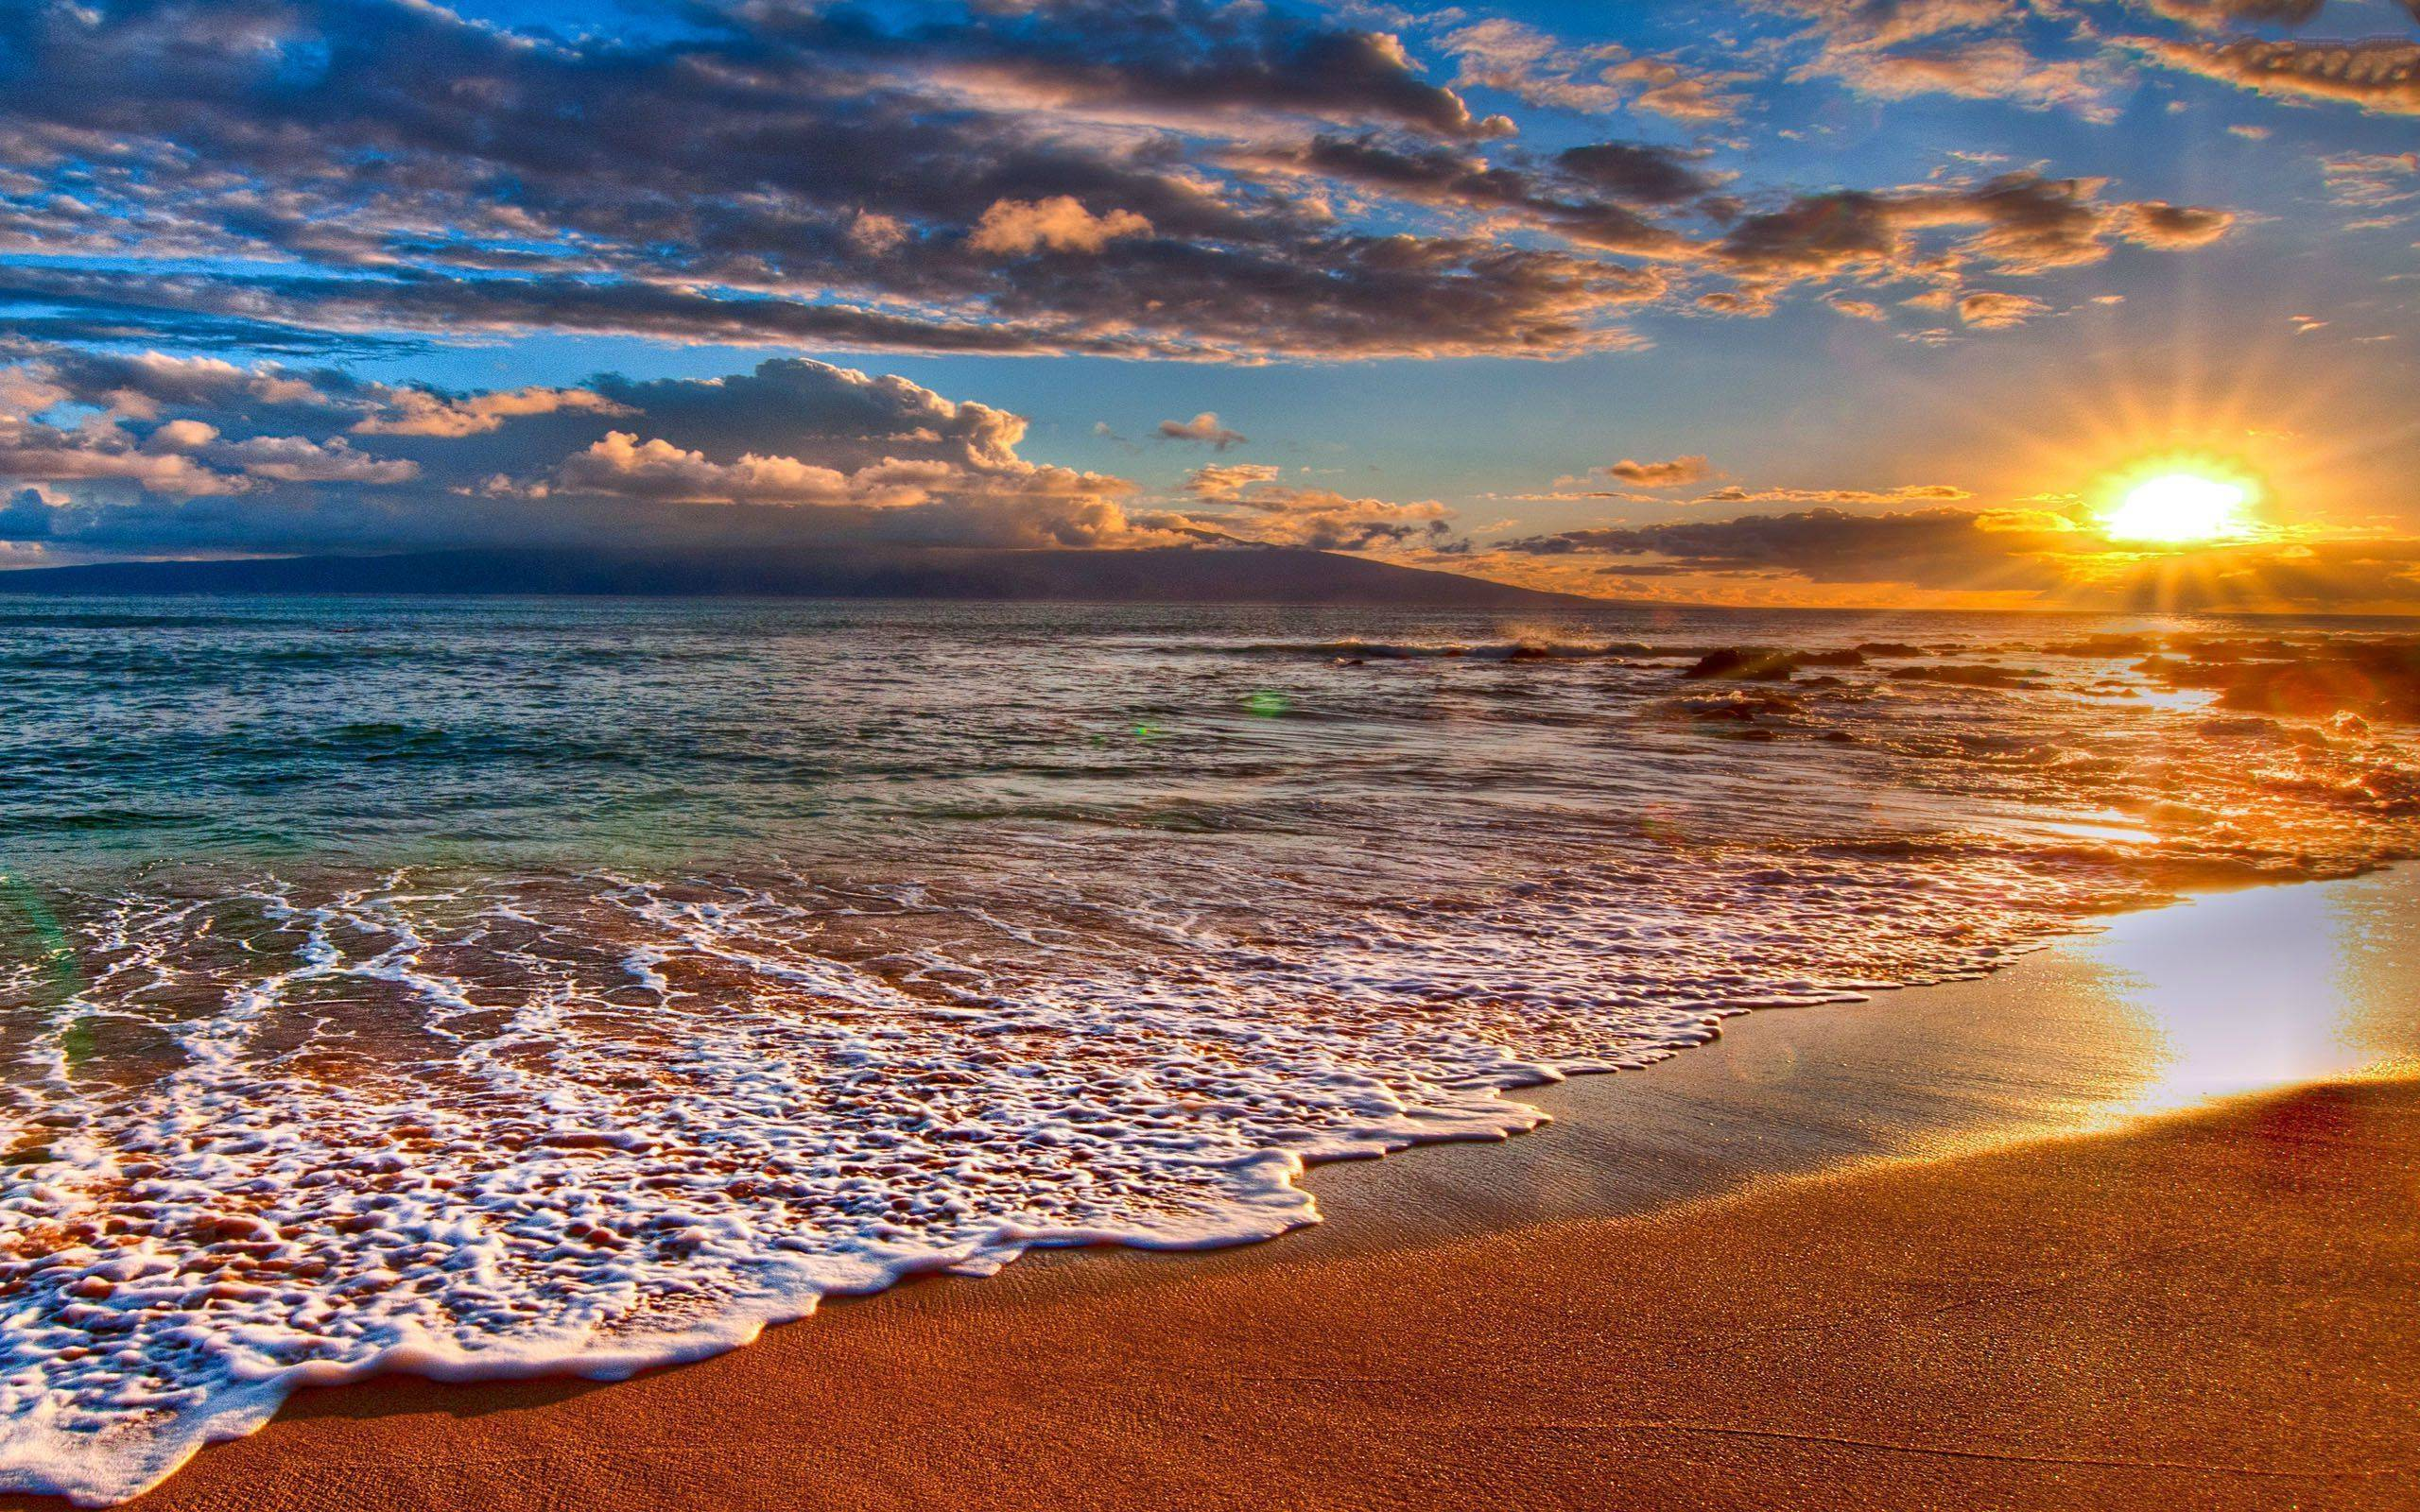 Desktop Backgrounds Beach Sunset   wallpaper 2560x1600